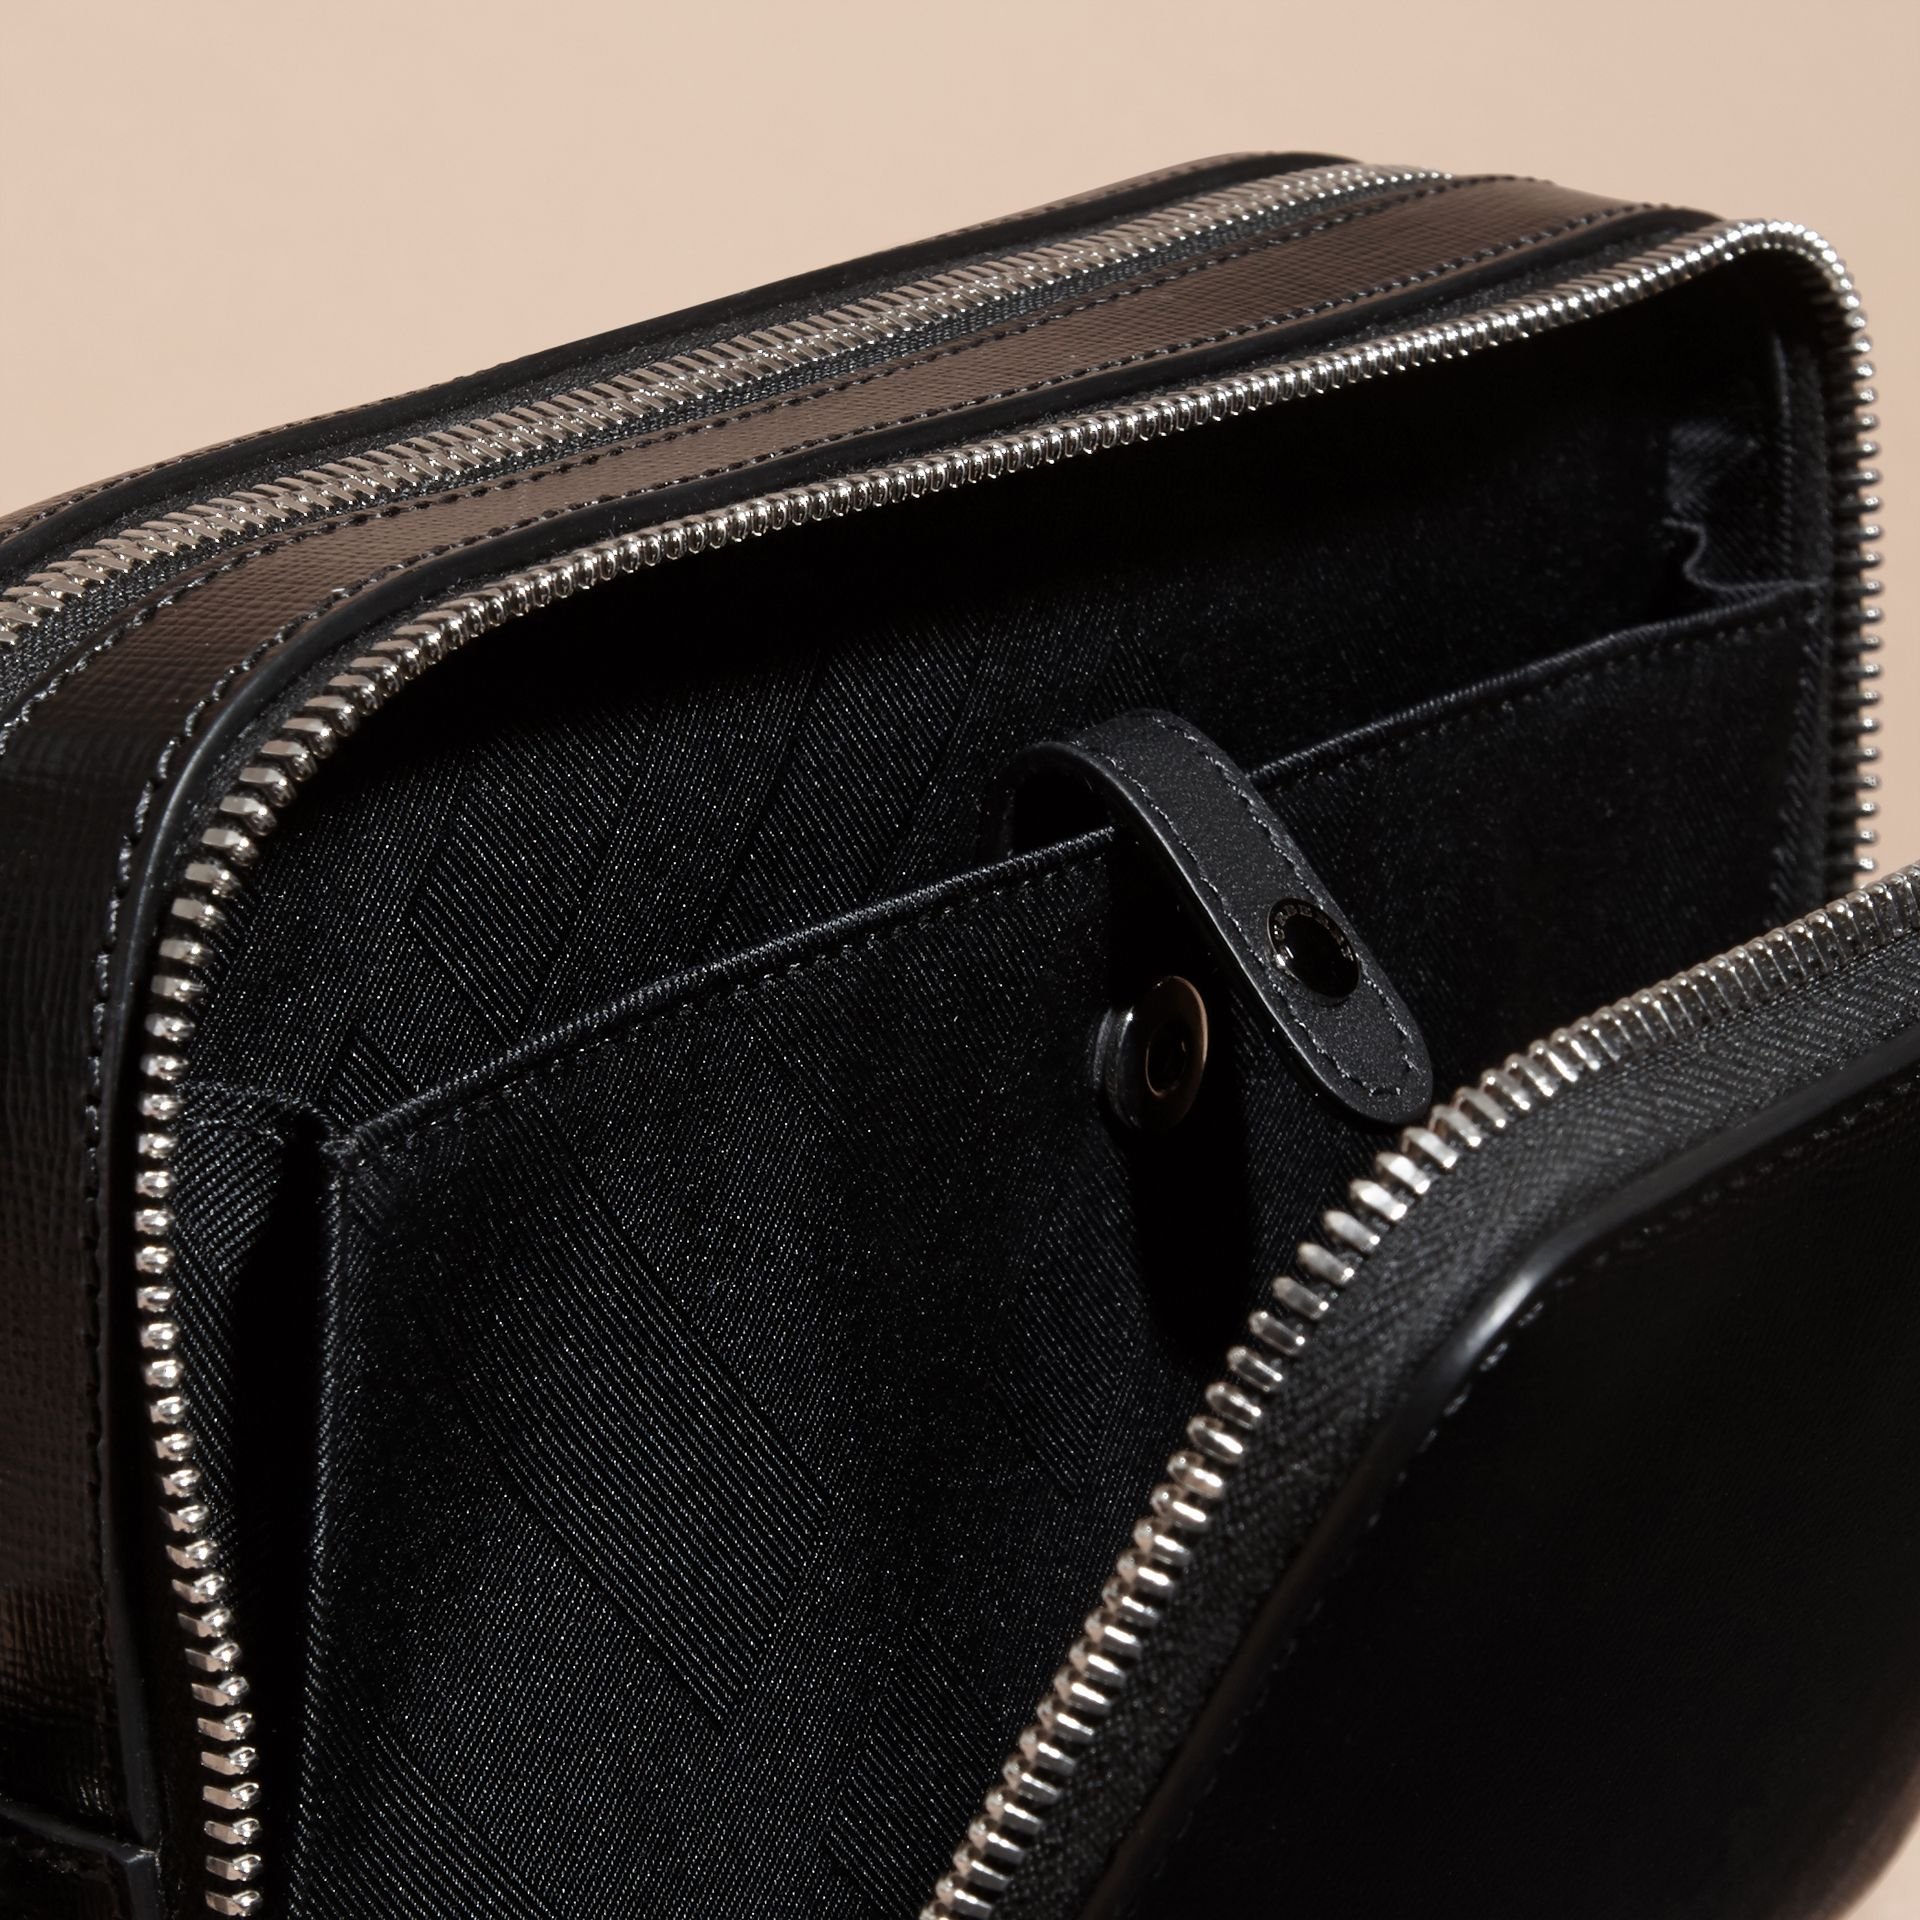 Black London Leather Pouch Black - gallery image 5